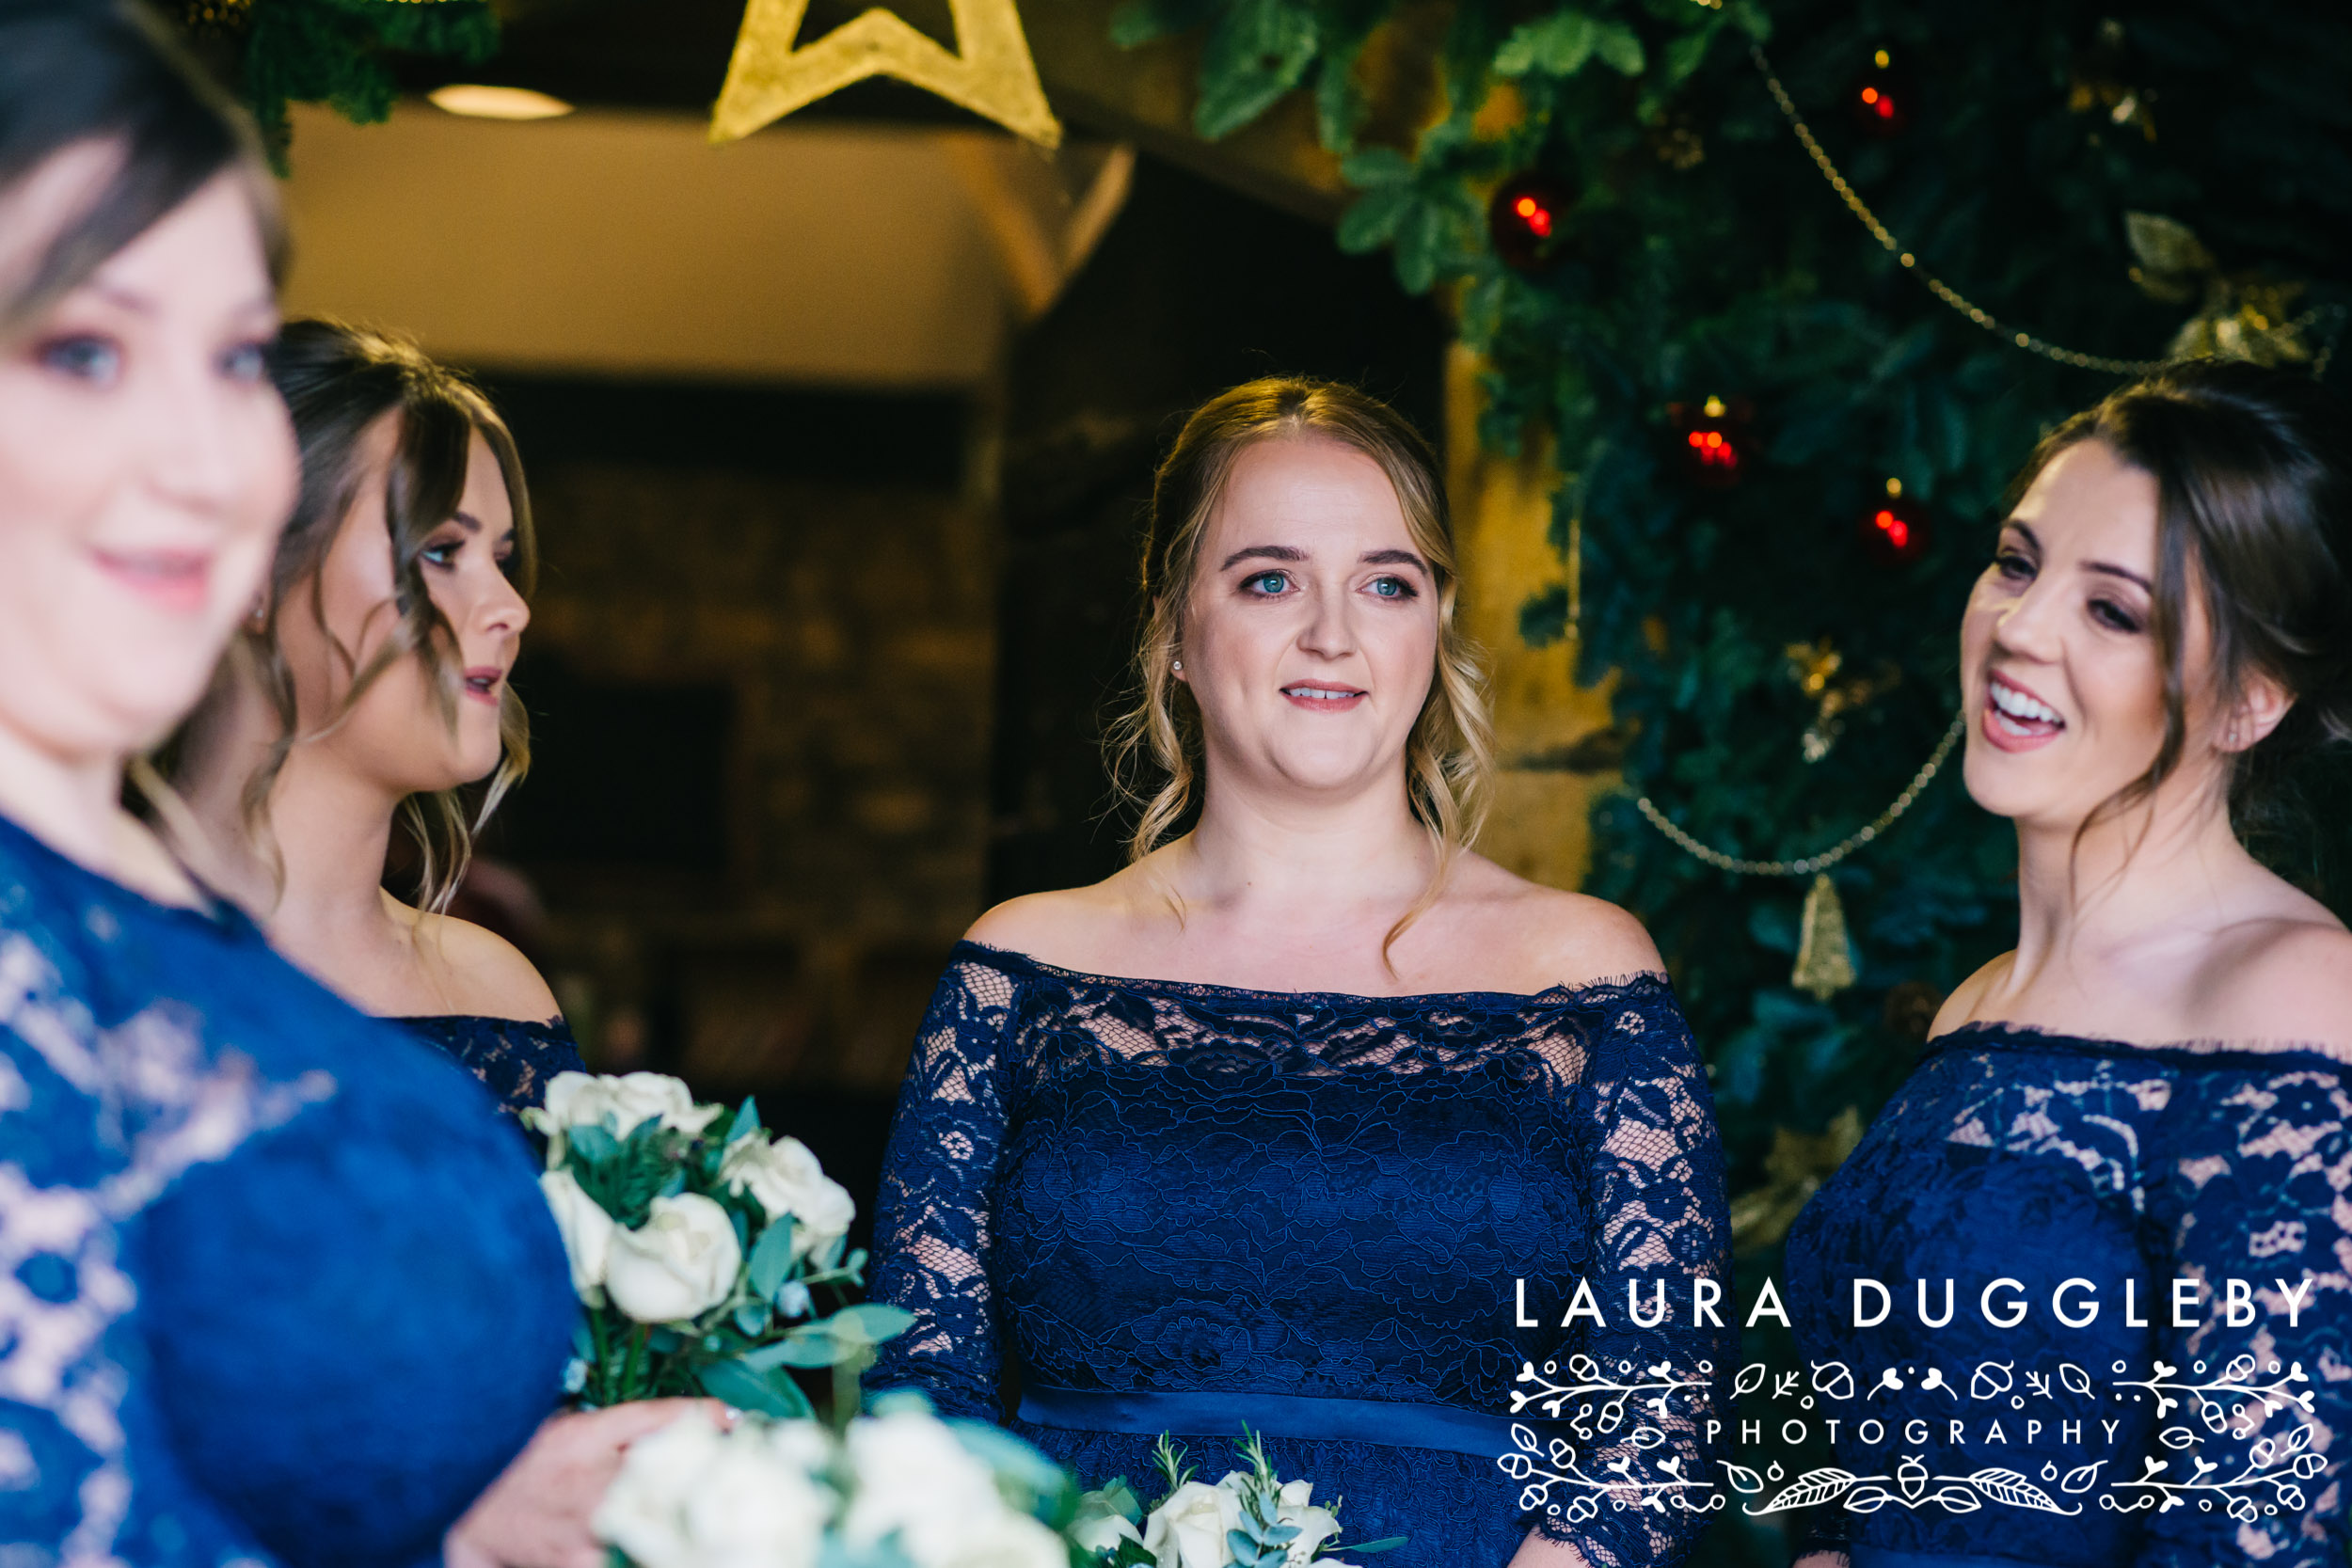 Laura Duggleby Stanley House Wedding Photographer-8.jpg